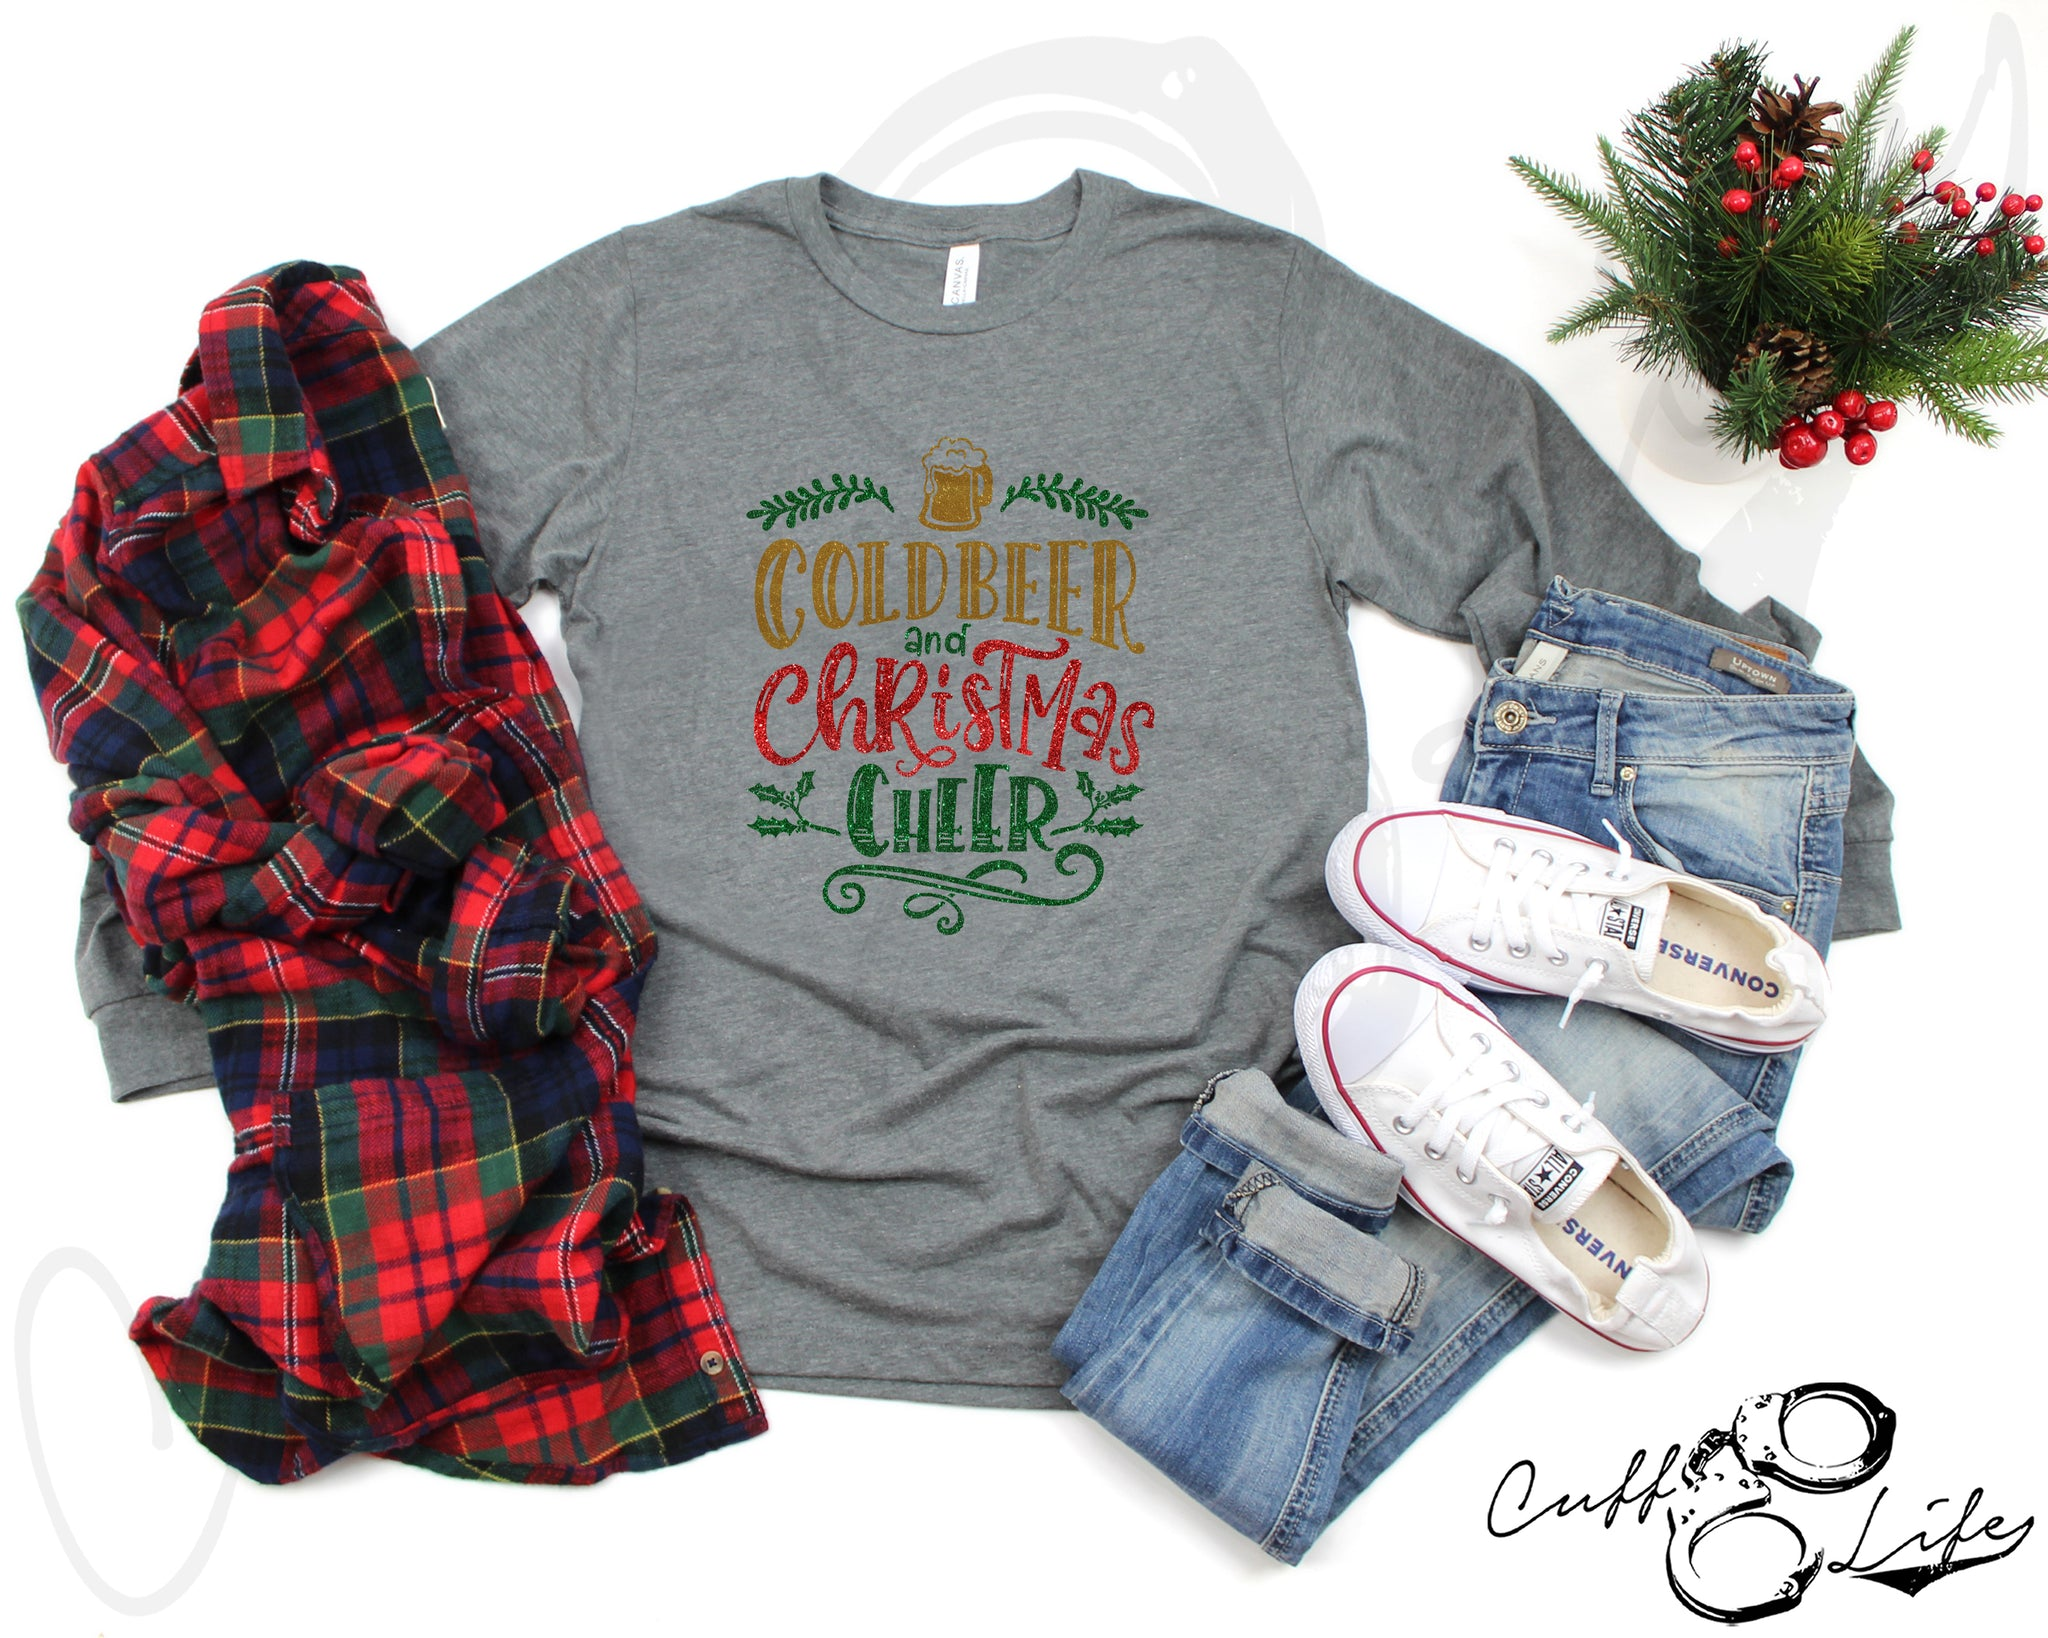 Cold Beer and Christmas Cheer - Long Sleeve Tee